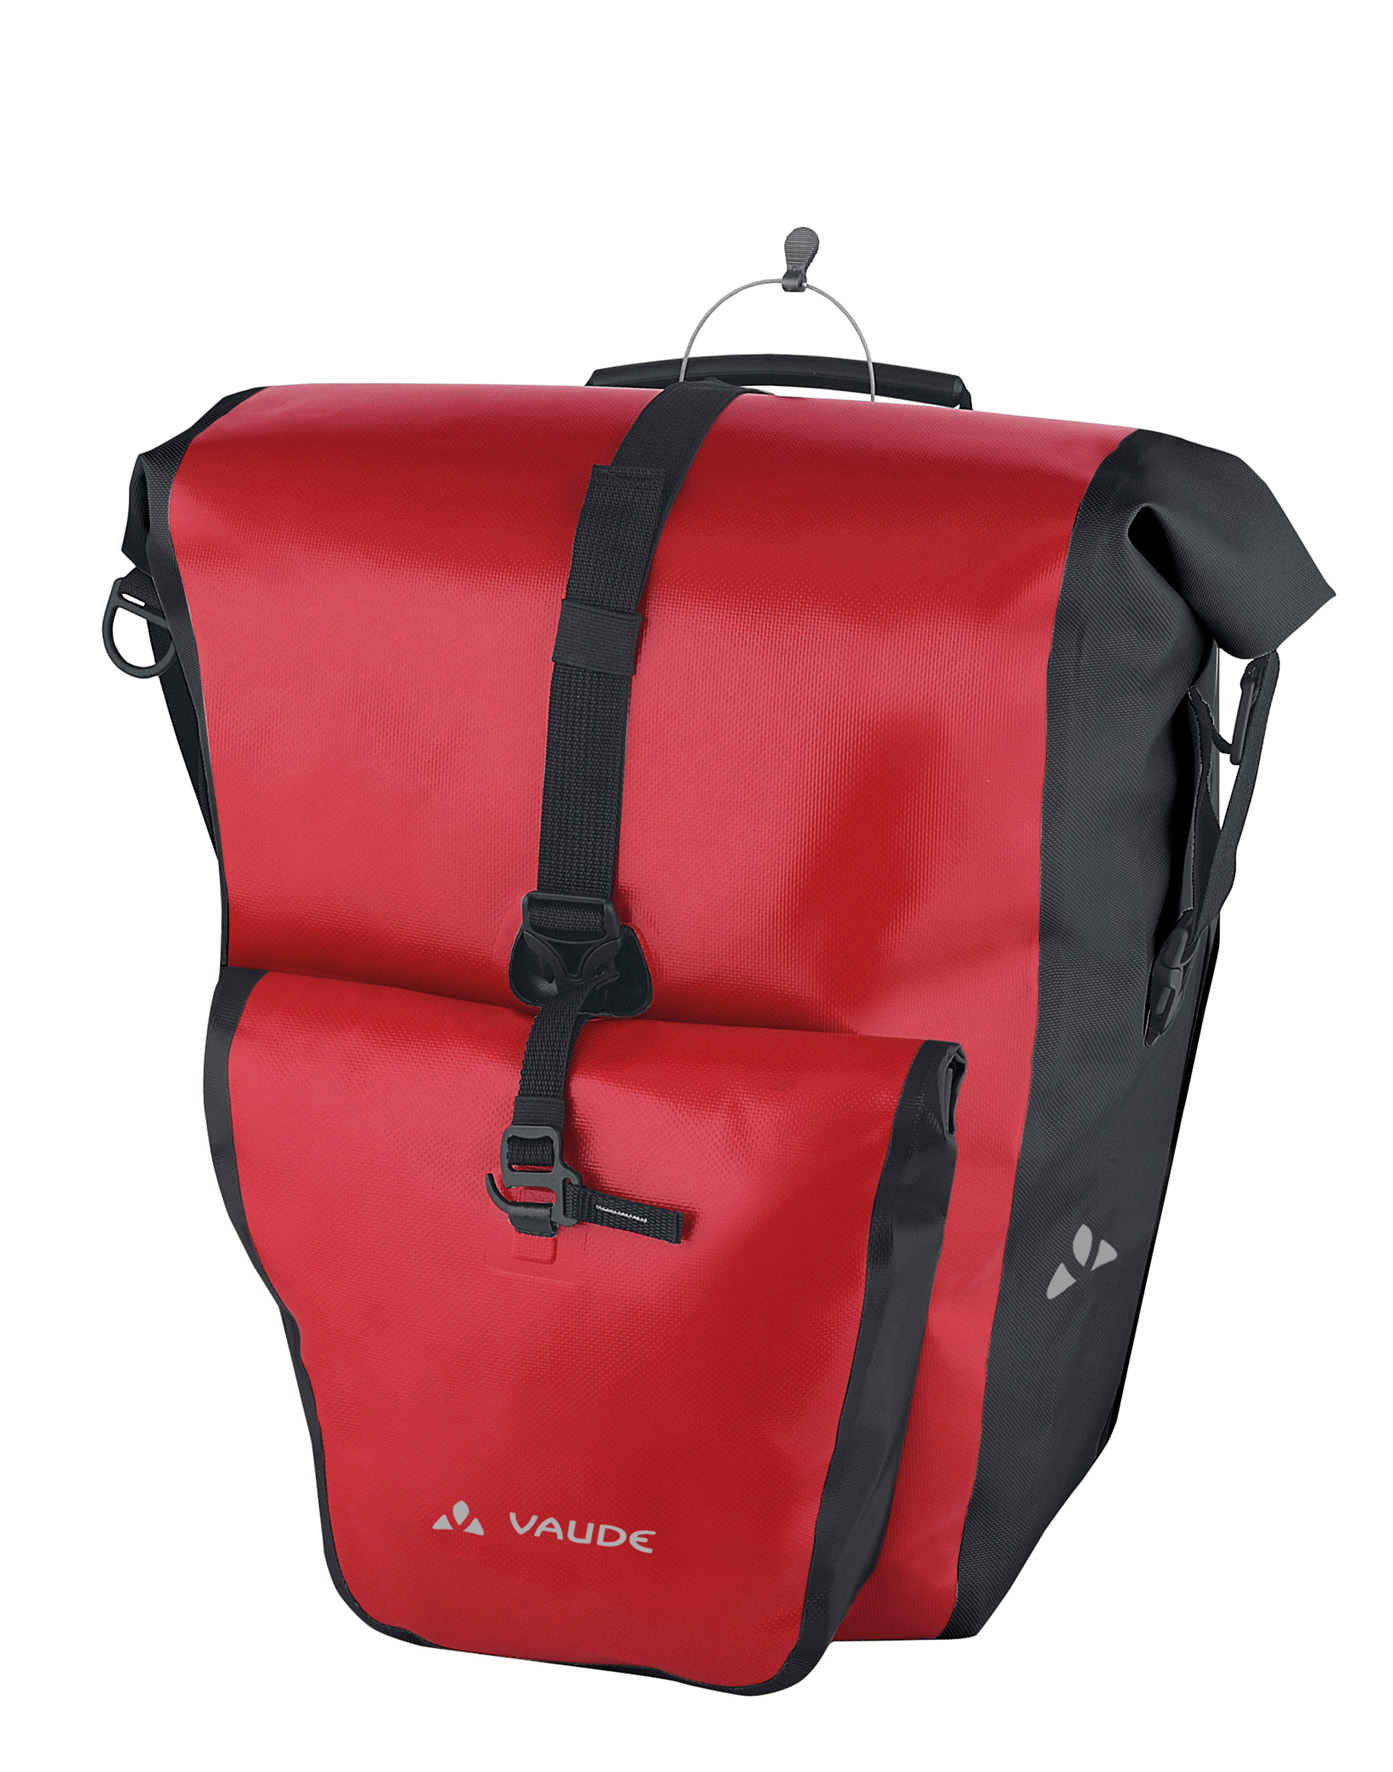 VAUDE Aqua Back Plus red/black  - schneider-sports